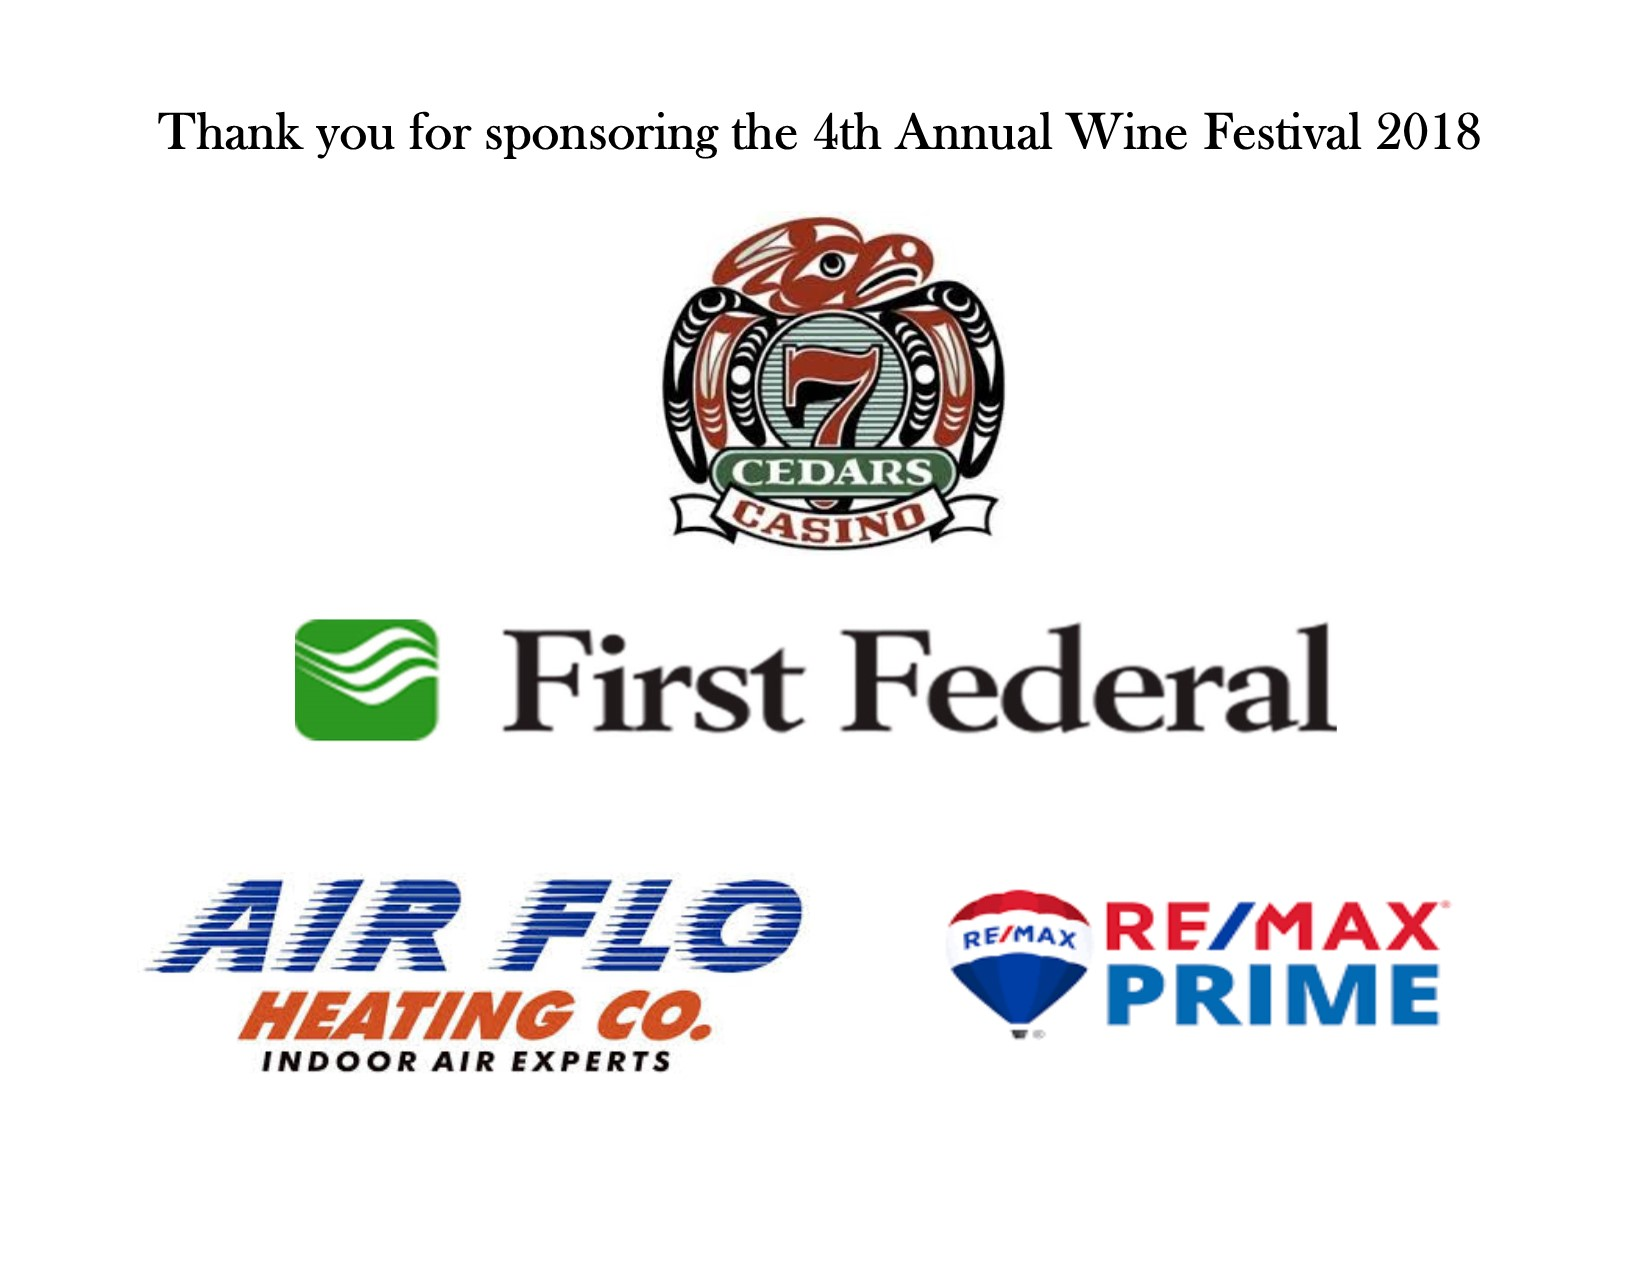 4th Annual Wine Festival Sponsors